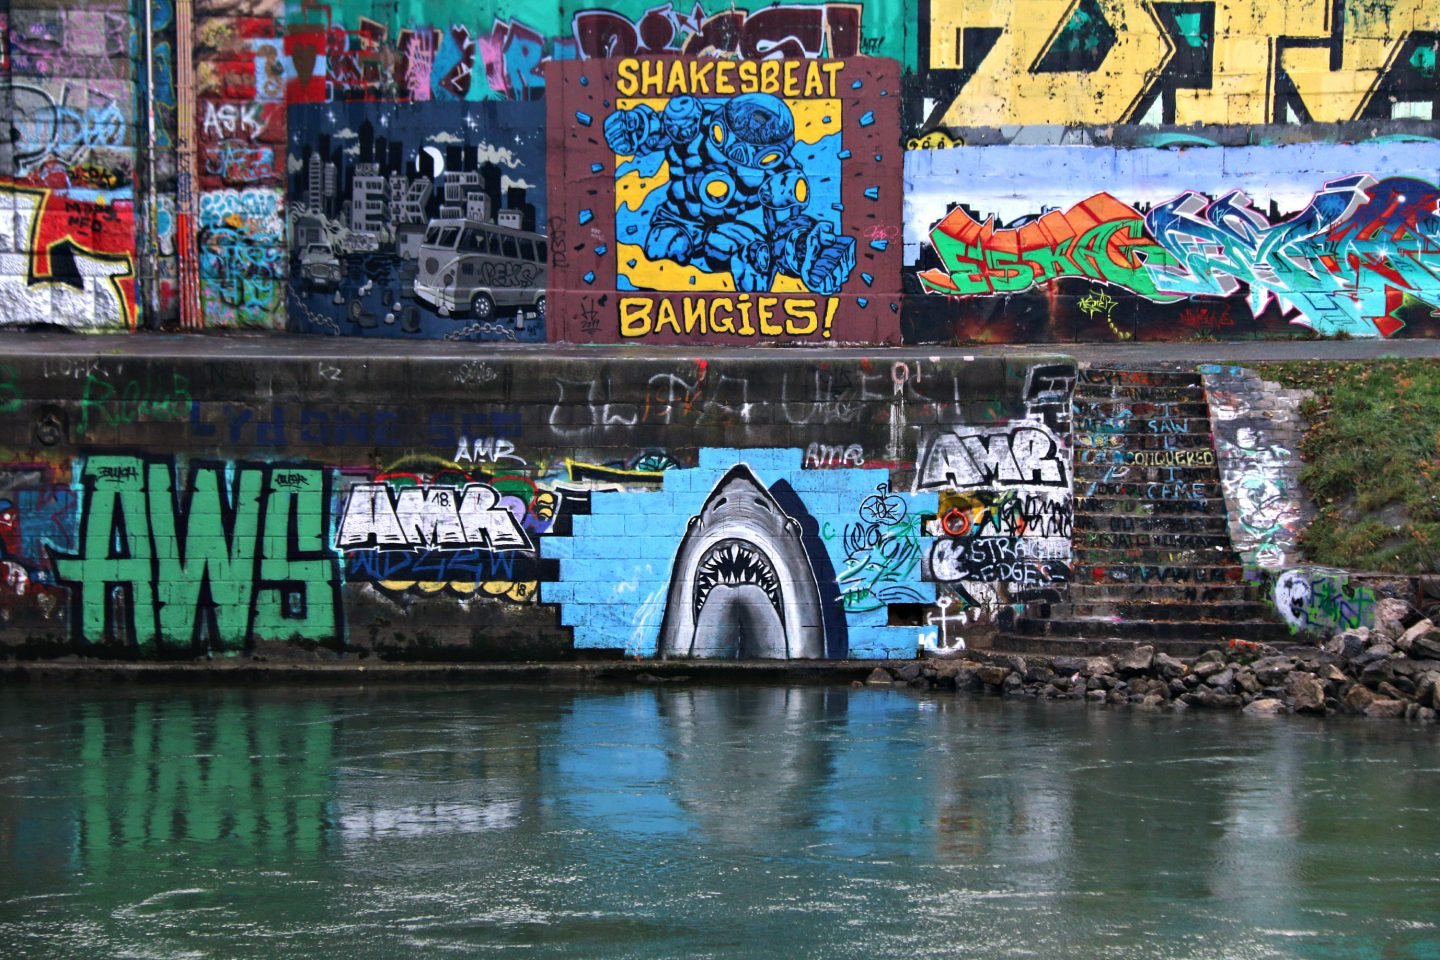 Vienna street art by the canal 26